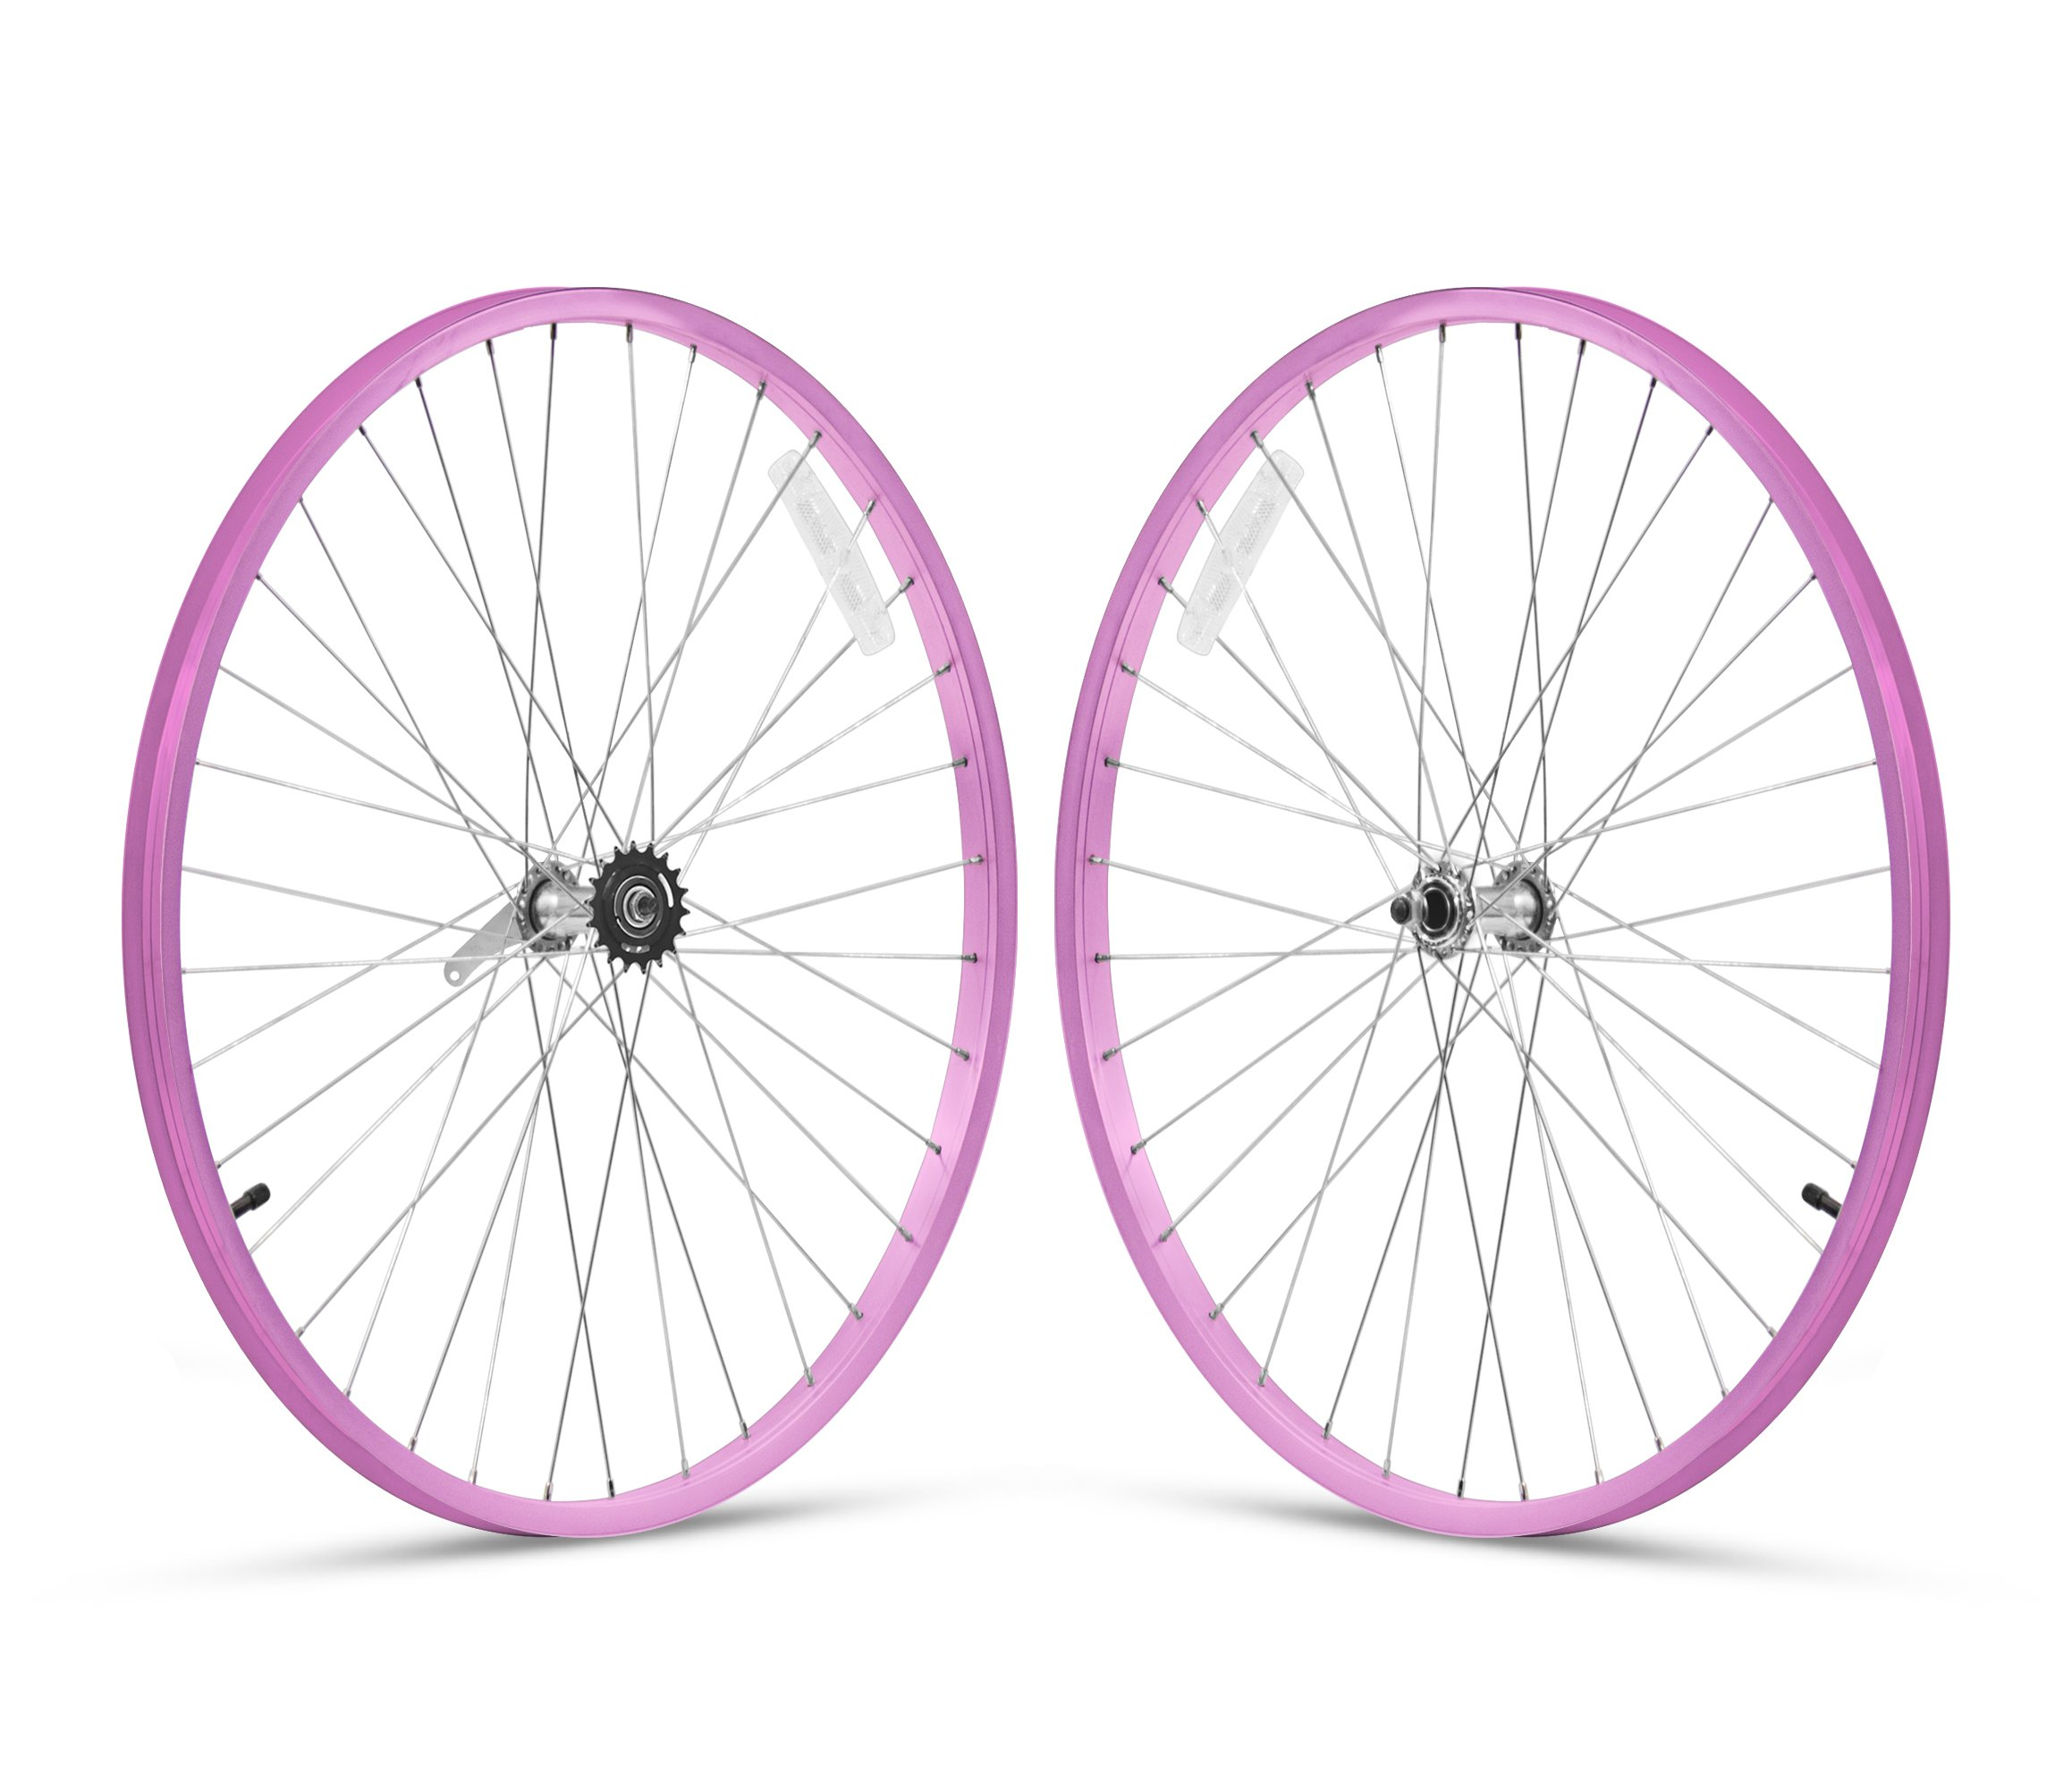 Firmstrong 1-Speed Beach Cruiser Bicycle Wheelset, Front/Rear, Pink, 26''